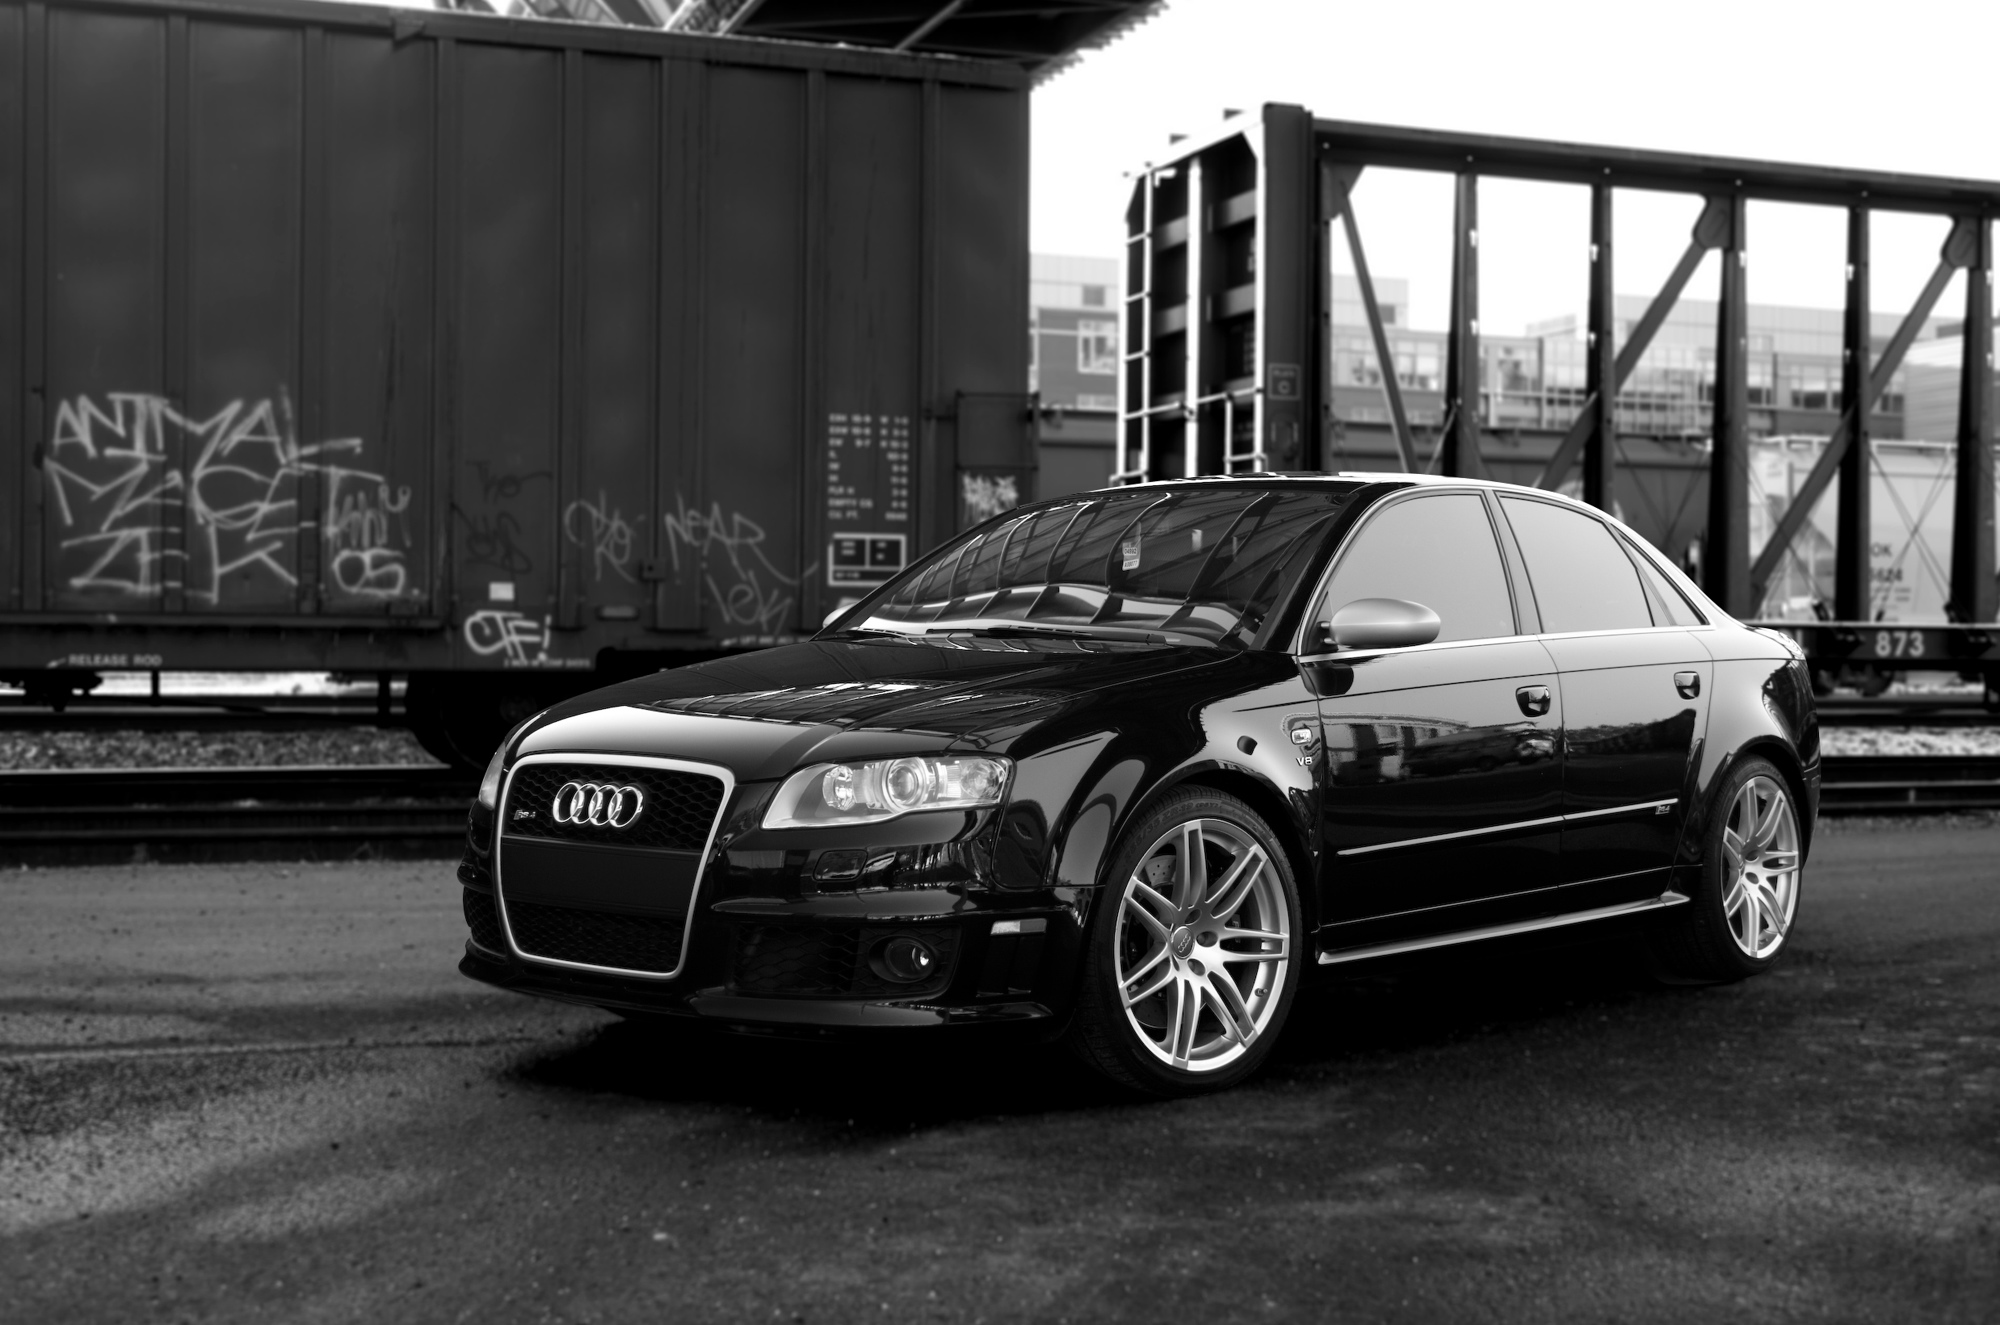 Audi Rs4 Photos Photogallery With 57 Pics Carsbase Com